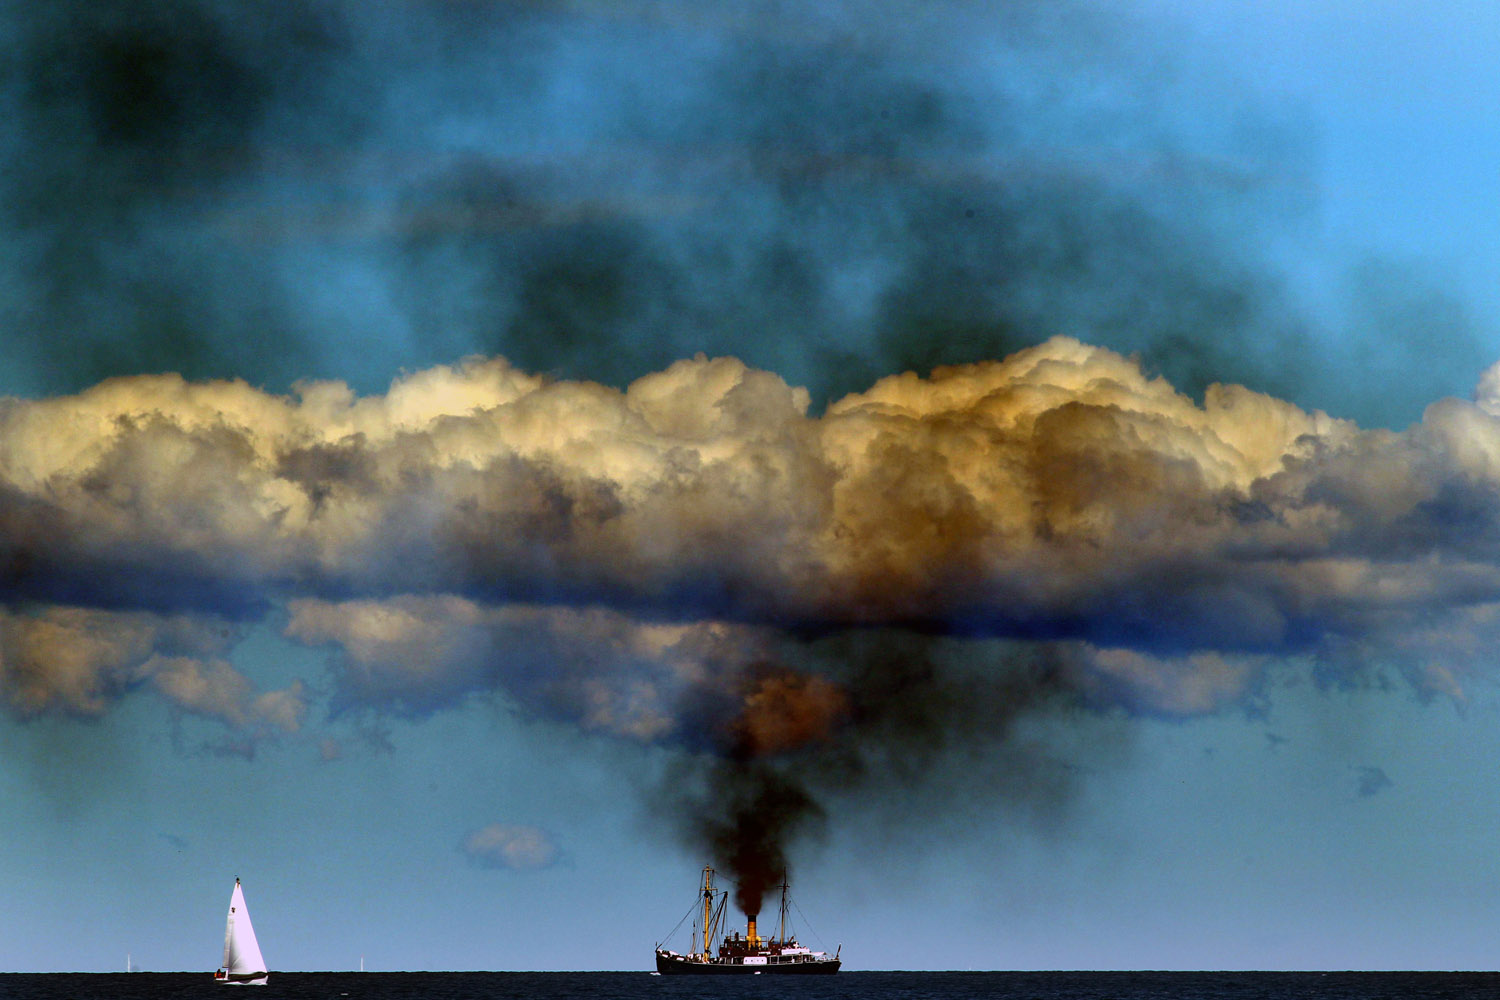 Aug.11, 2012. The German steam boat  Bussard,  built in 1905, parades on the Baltic Sea during the  Hanse Sail  sailing festival in Rostock, northeastern Germany.